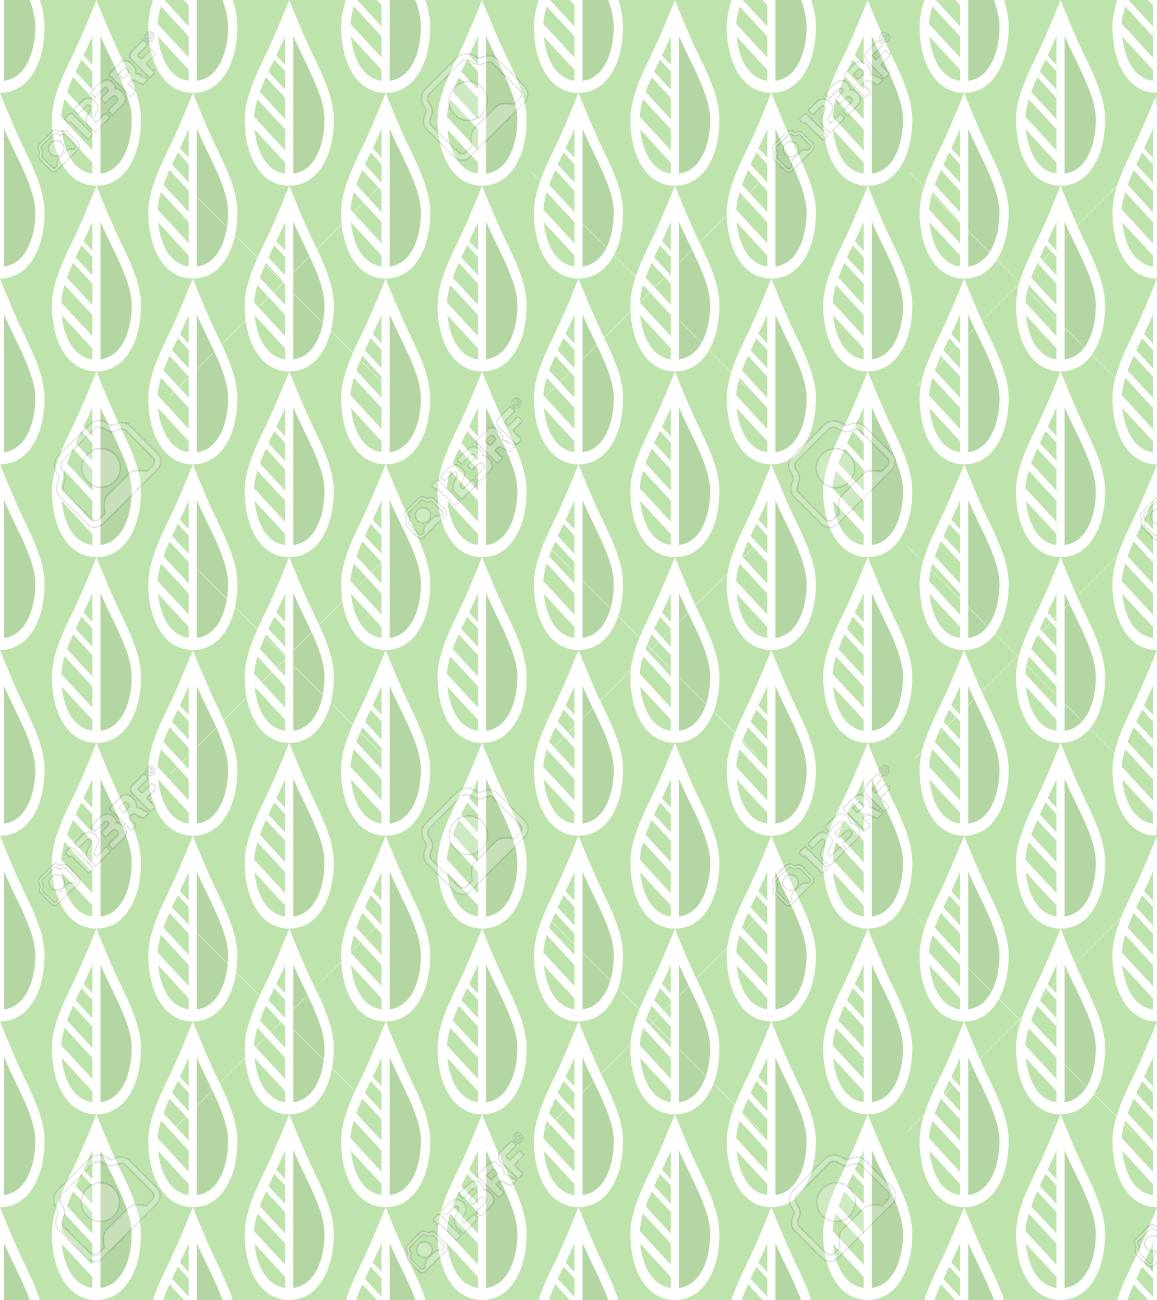 Abstract Geometric Pattern Wallpaper Seamless Background Green And White Ornament Graphic Modern Pattern Stock Photo Picture And Royalty Free Image Image 104501037